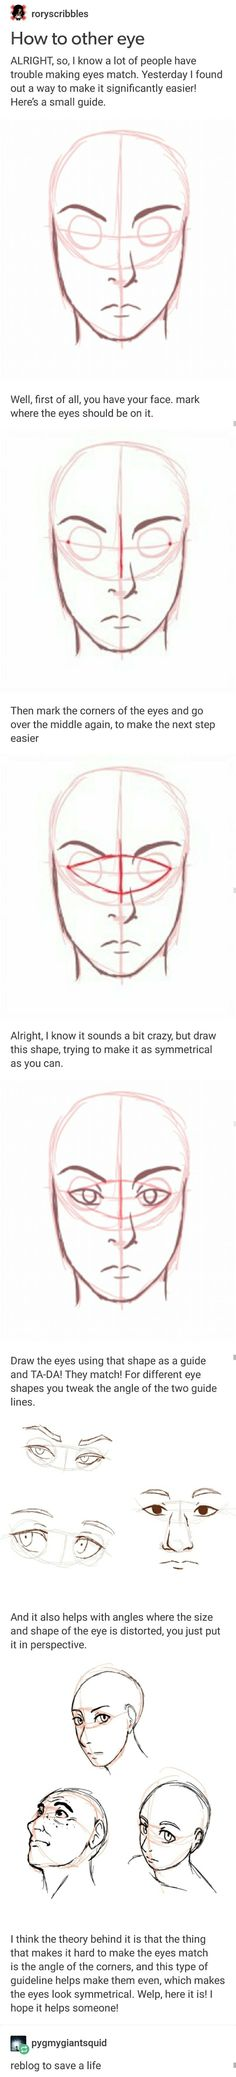 Now I just need too learn to draw everything else - Great! Now I just need too learn to draw everything else Great! Now I just need too learn to draw everything else Art Drawings Sketches, Cartoon Drawings, Cool Drawings, Anatomy Sketches, Drawing Faces, Anatomy Drawing, Funny Drawings, Drawing Tutorials, Drawing Tips